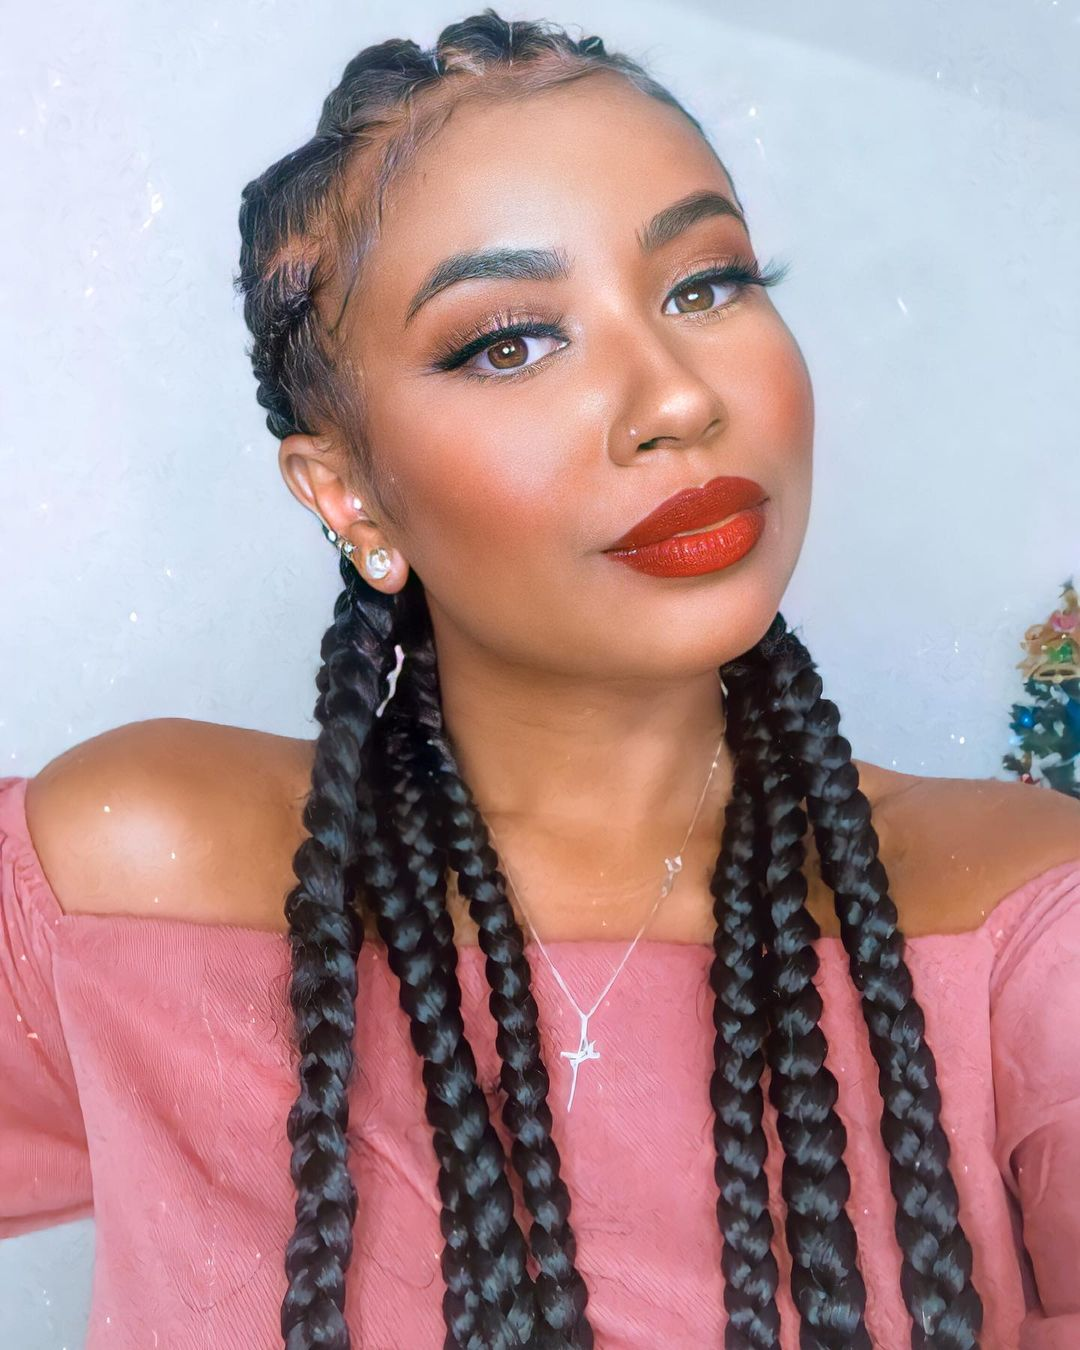 14. Who are the darlings of the braids